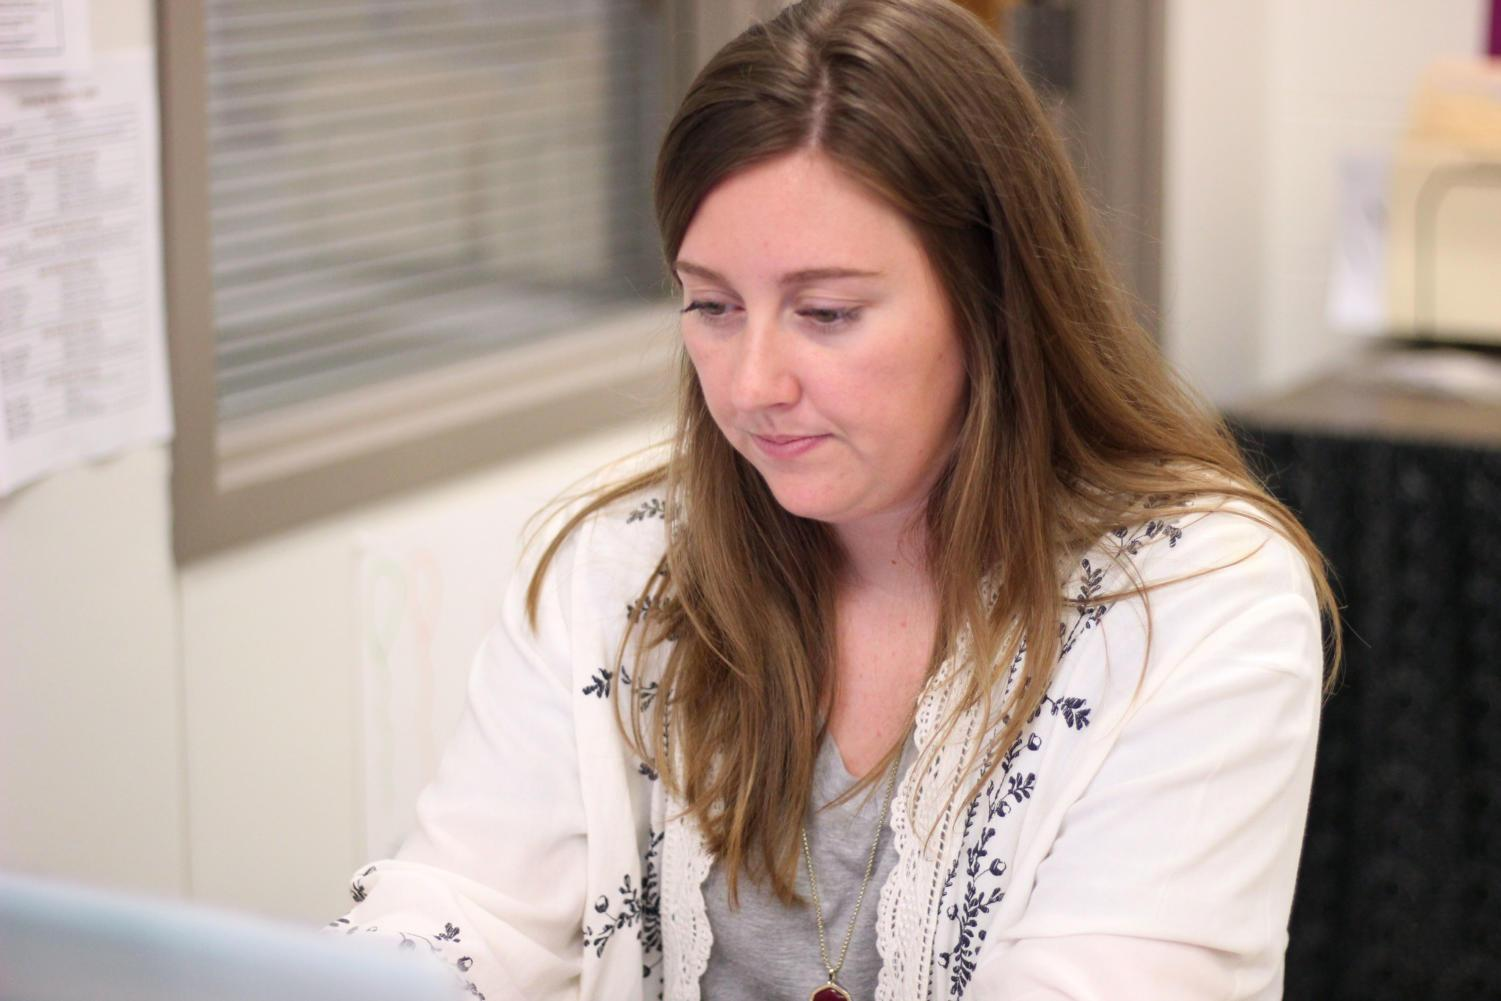 Family consumer science teacher Lauryn Neal works on her class schedule for the week of April 30.